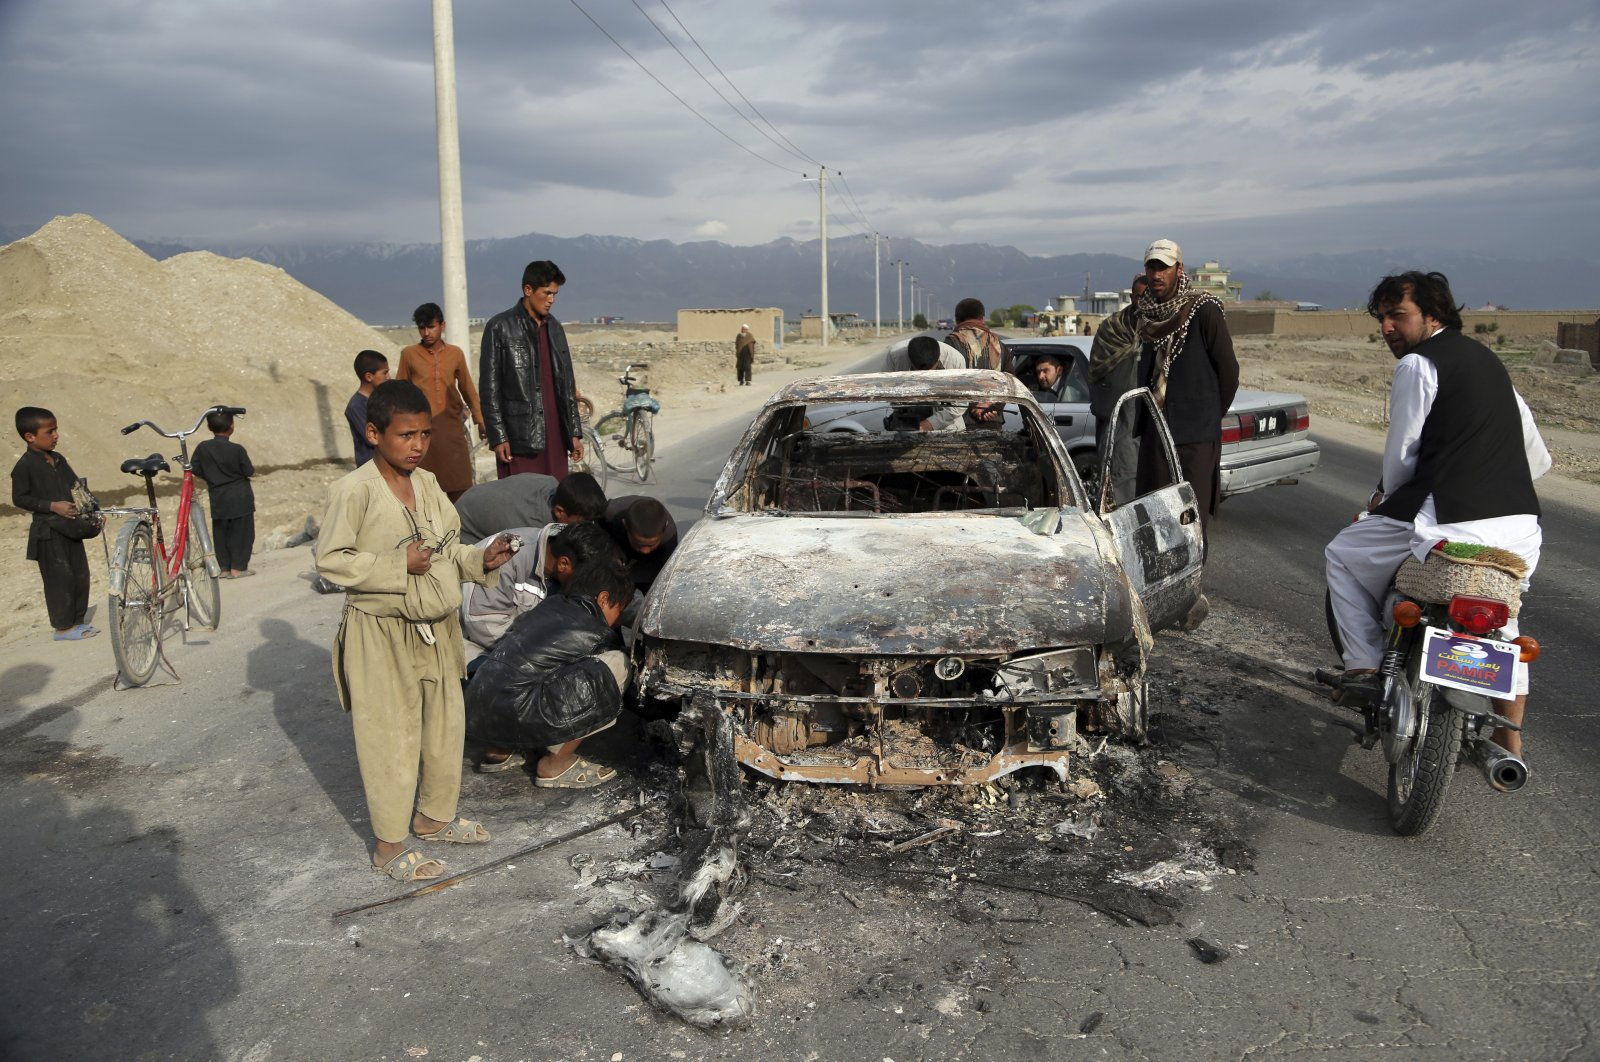 Afghans look at a civilian vehicle burnt after being shot by U.S. forces after an attack near the Bagram Air Base, north of Kabul, Afghanistan, April 9, 2019. (AP Photo)